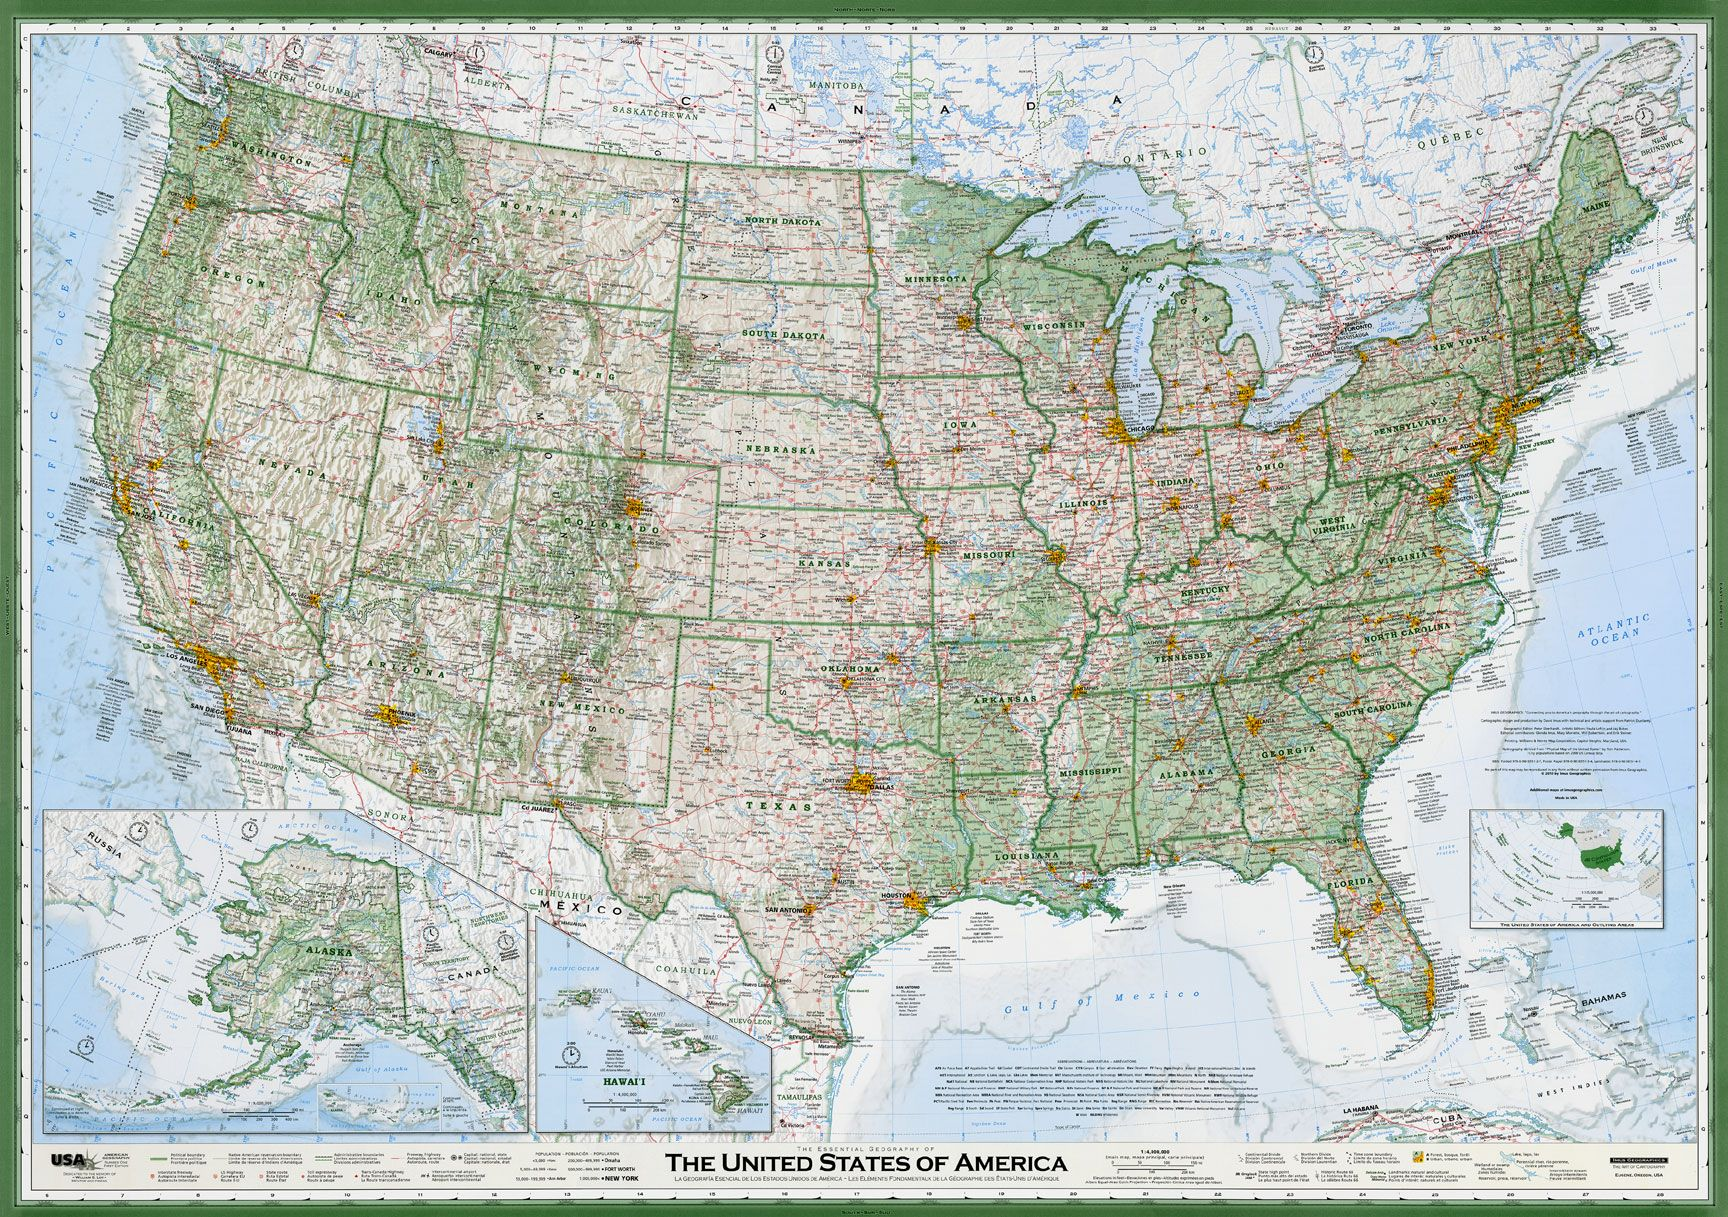 Laminated United States Map.Award Winning U S Map 50x35 3 39 95 For A Rolled Laminated One